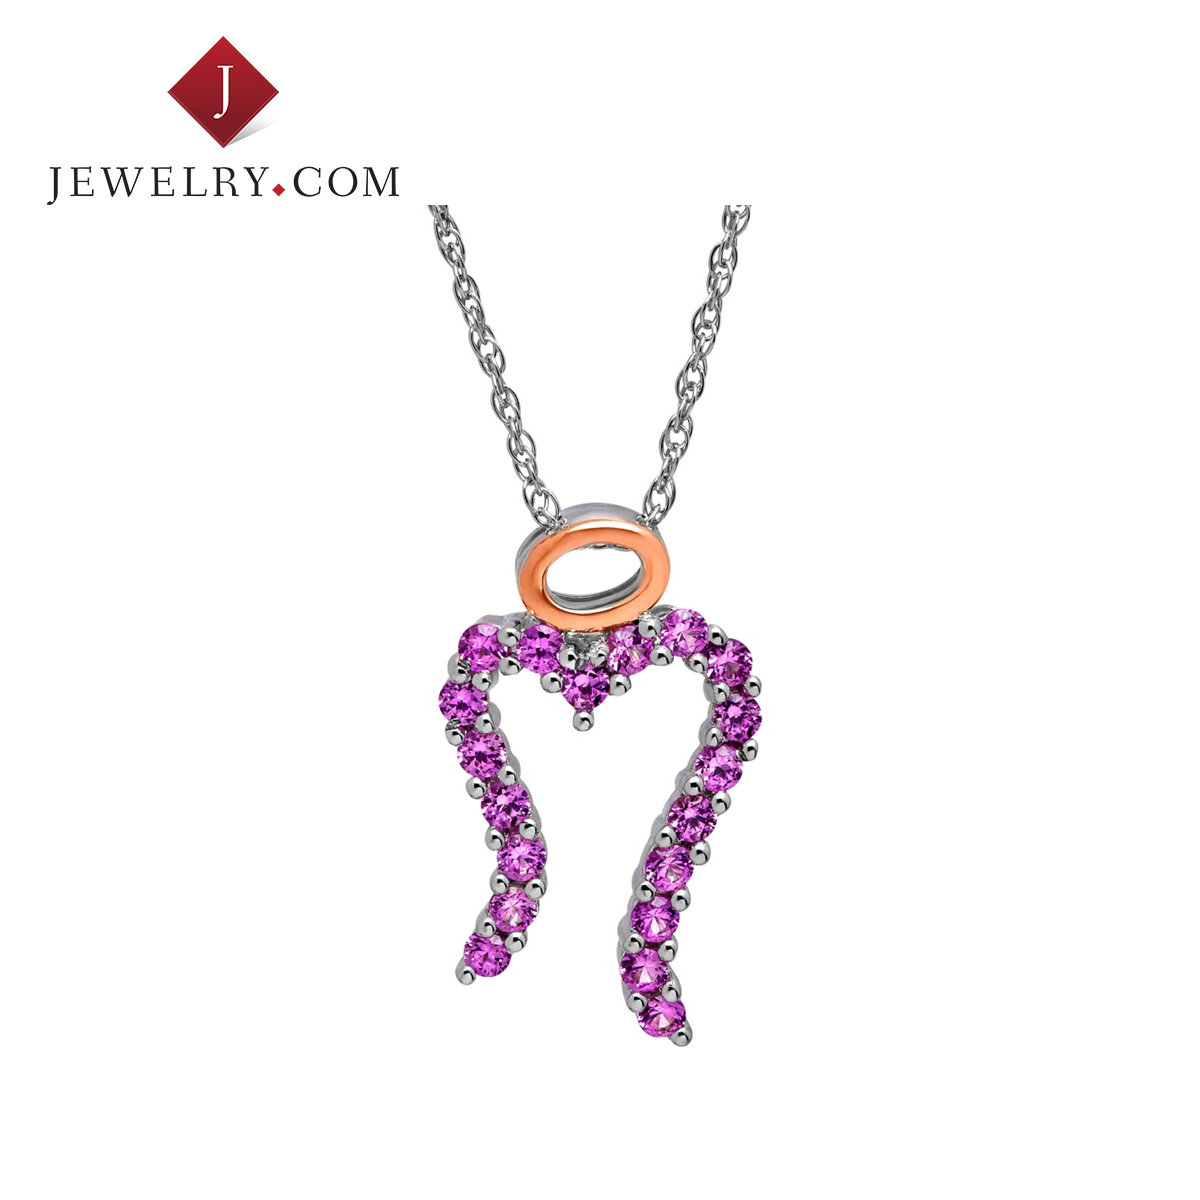 Jewelry.com official k rose gold plated sterling silver 875ct mm pink sapphire miracle charm pendant symbolizes